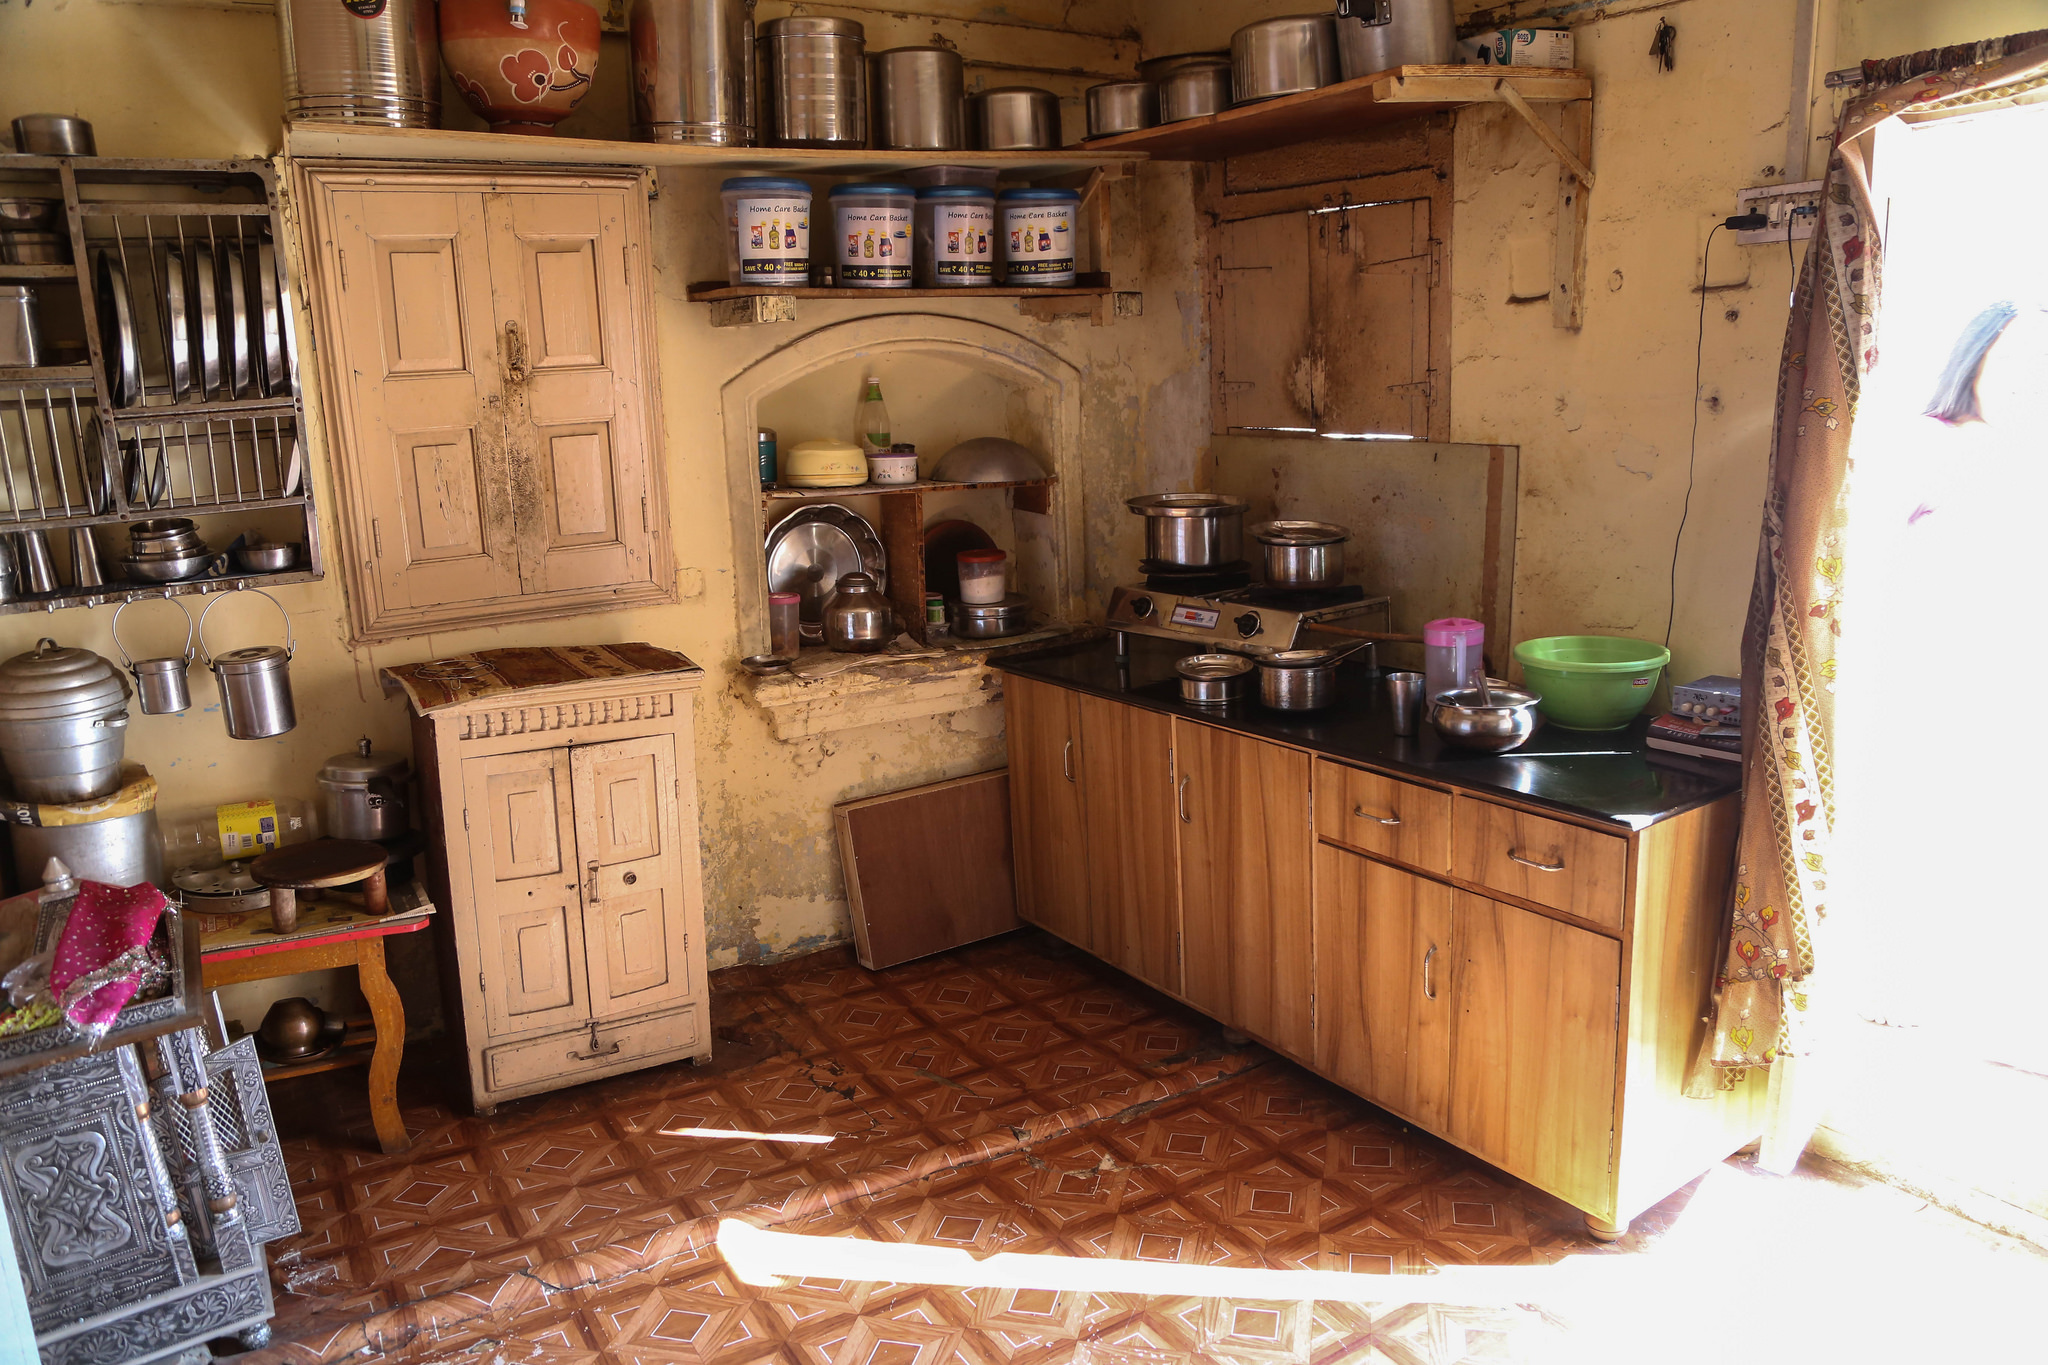 Kitchen of an Indian home